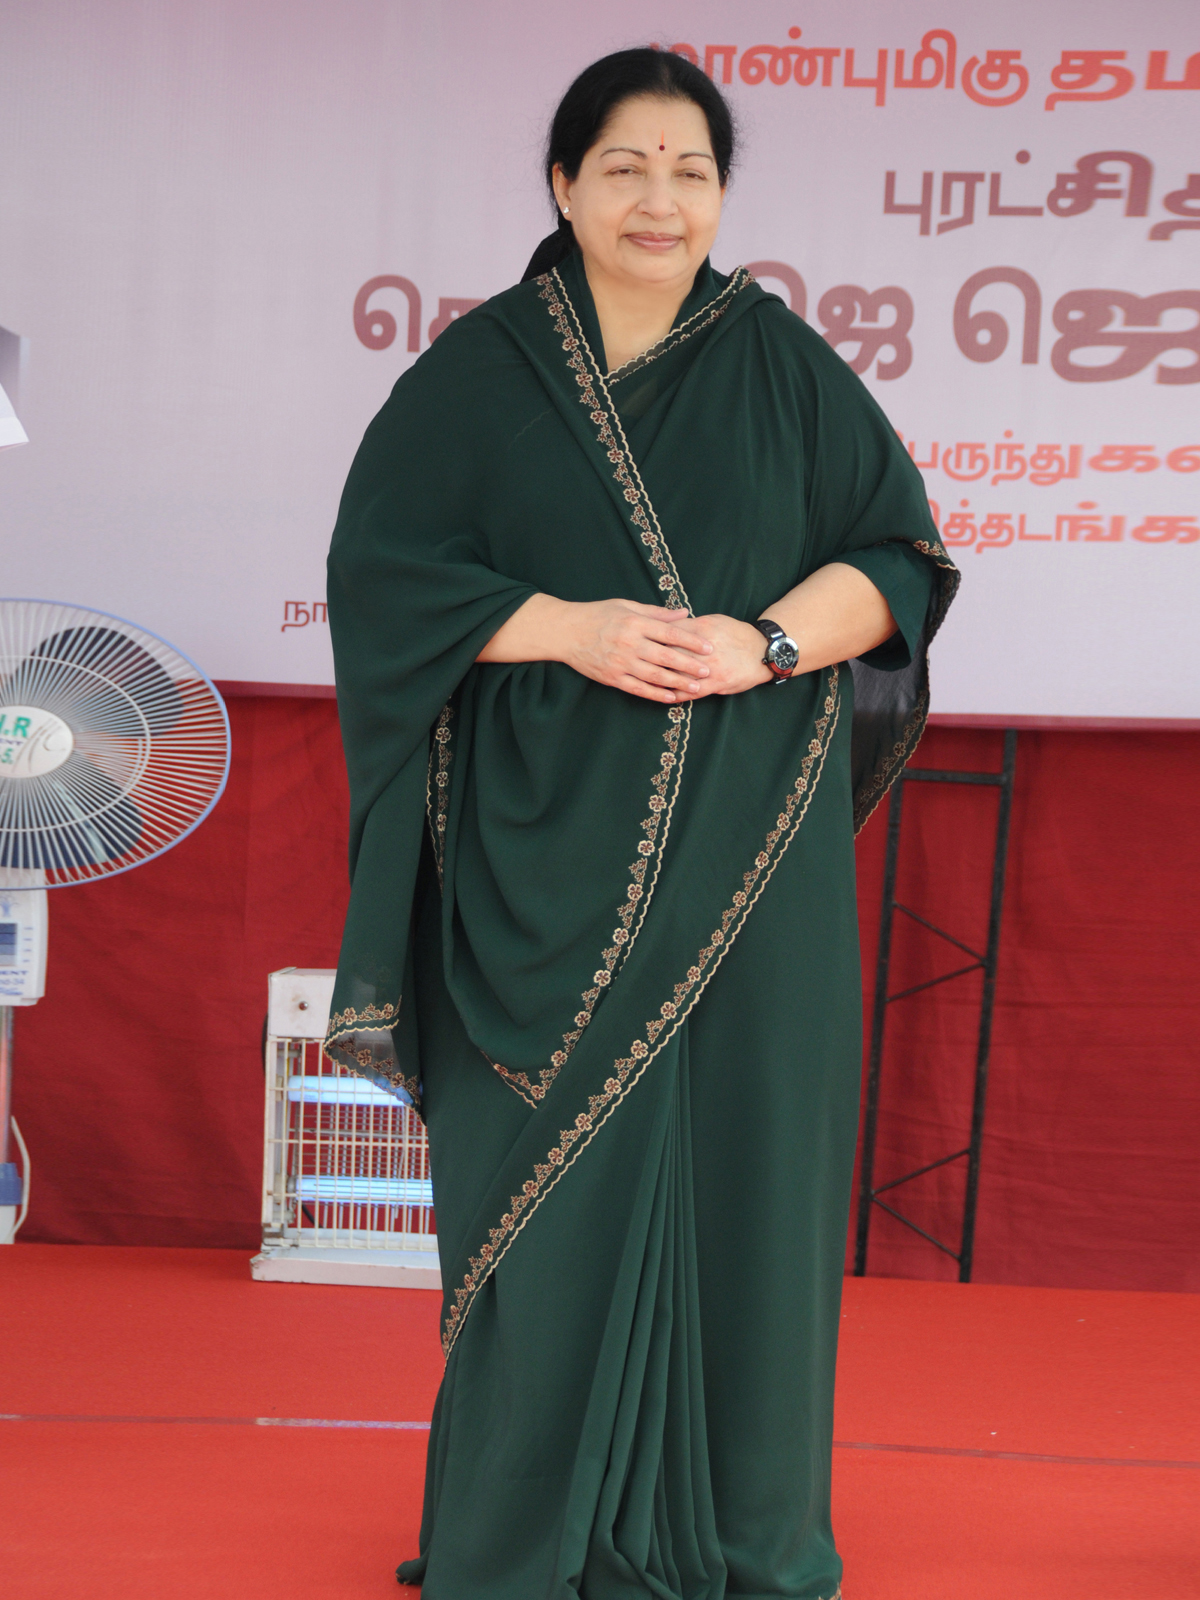 From Ammu To Amma: Looking At The Remarkable Life Of J